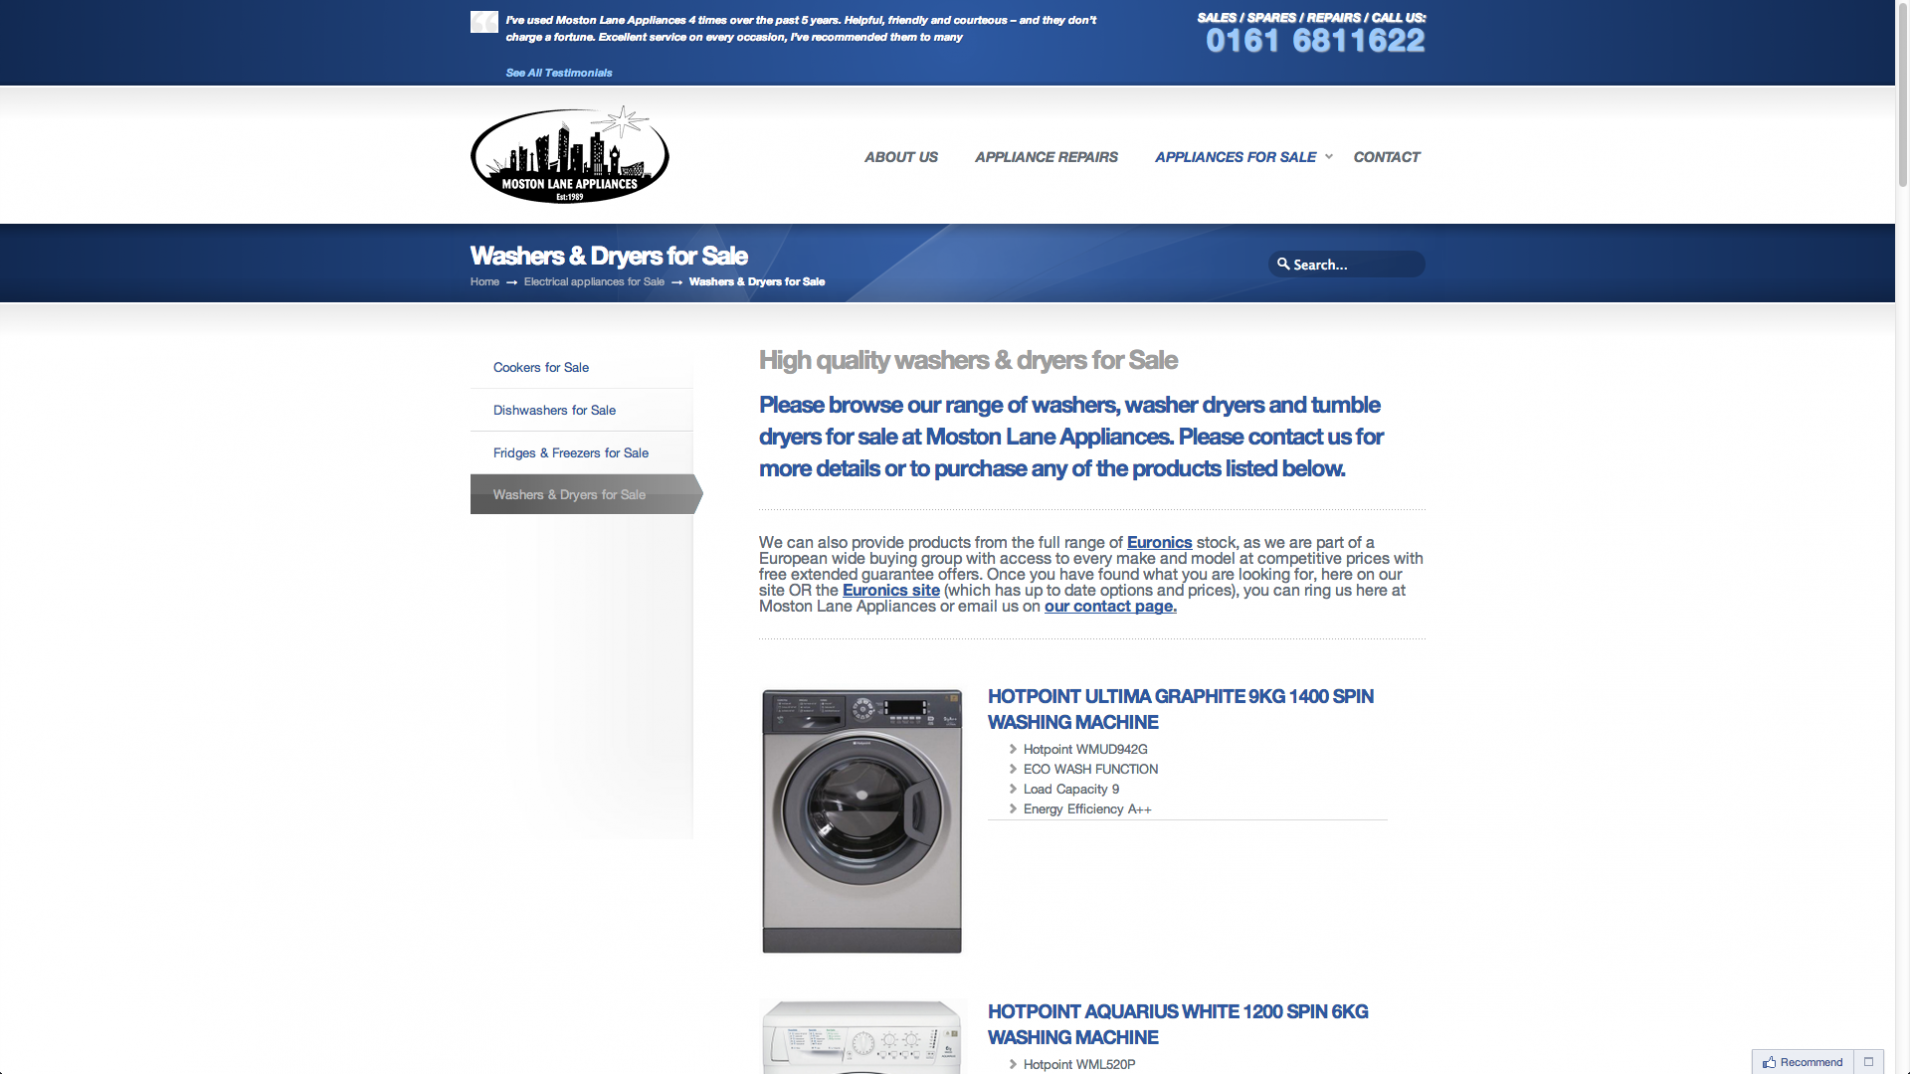 Screen Shot 2013 12 23 at 16.31.22 - Webdesign for appliance repairs company